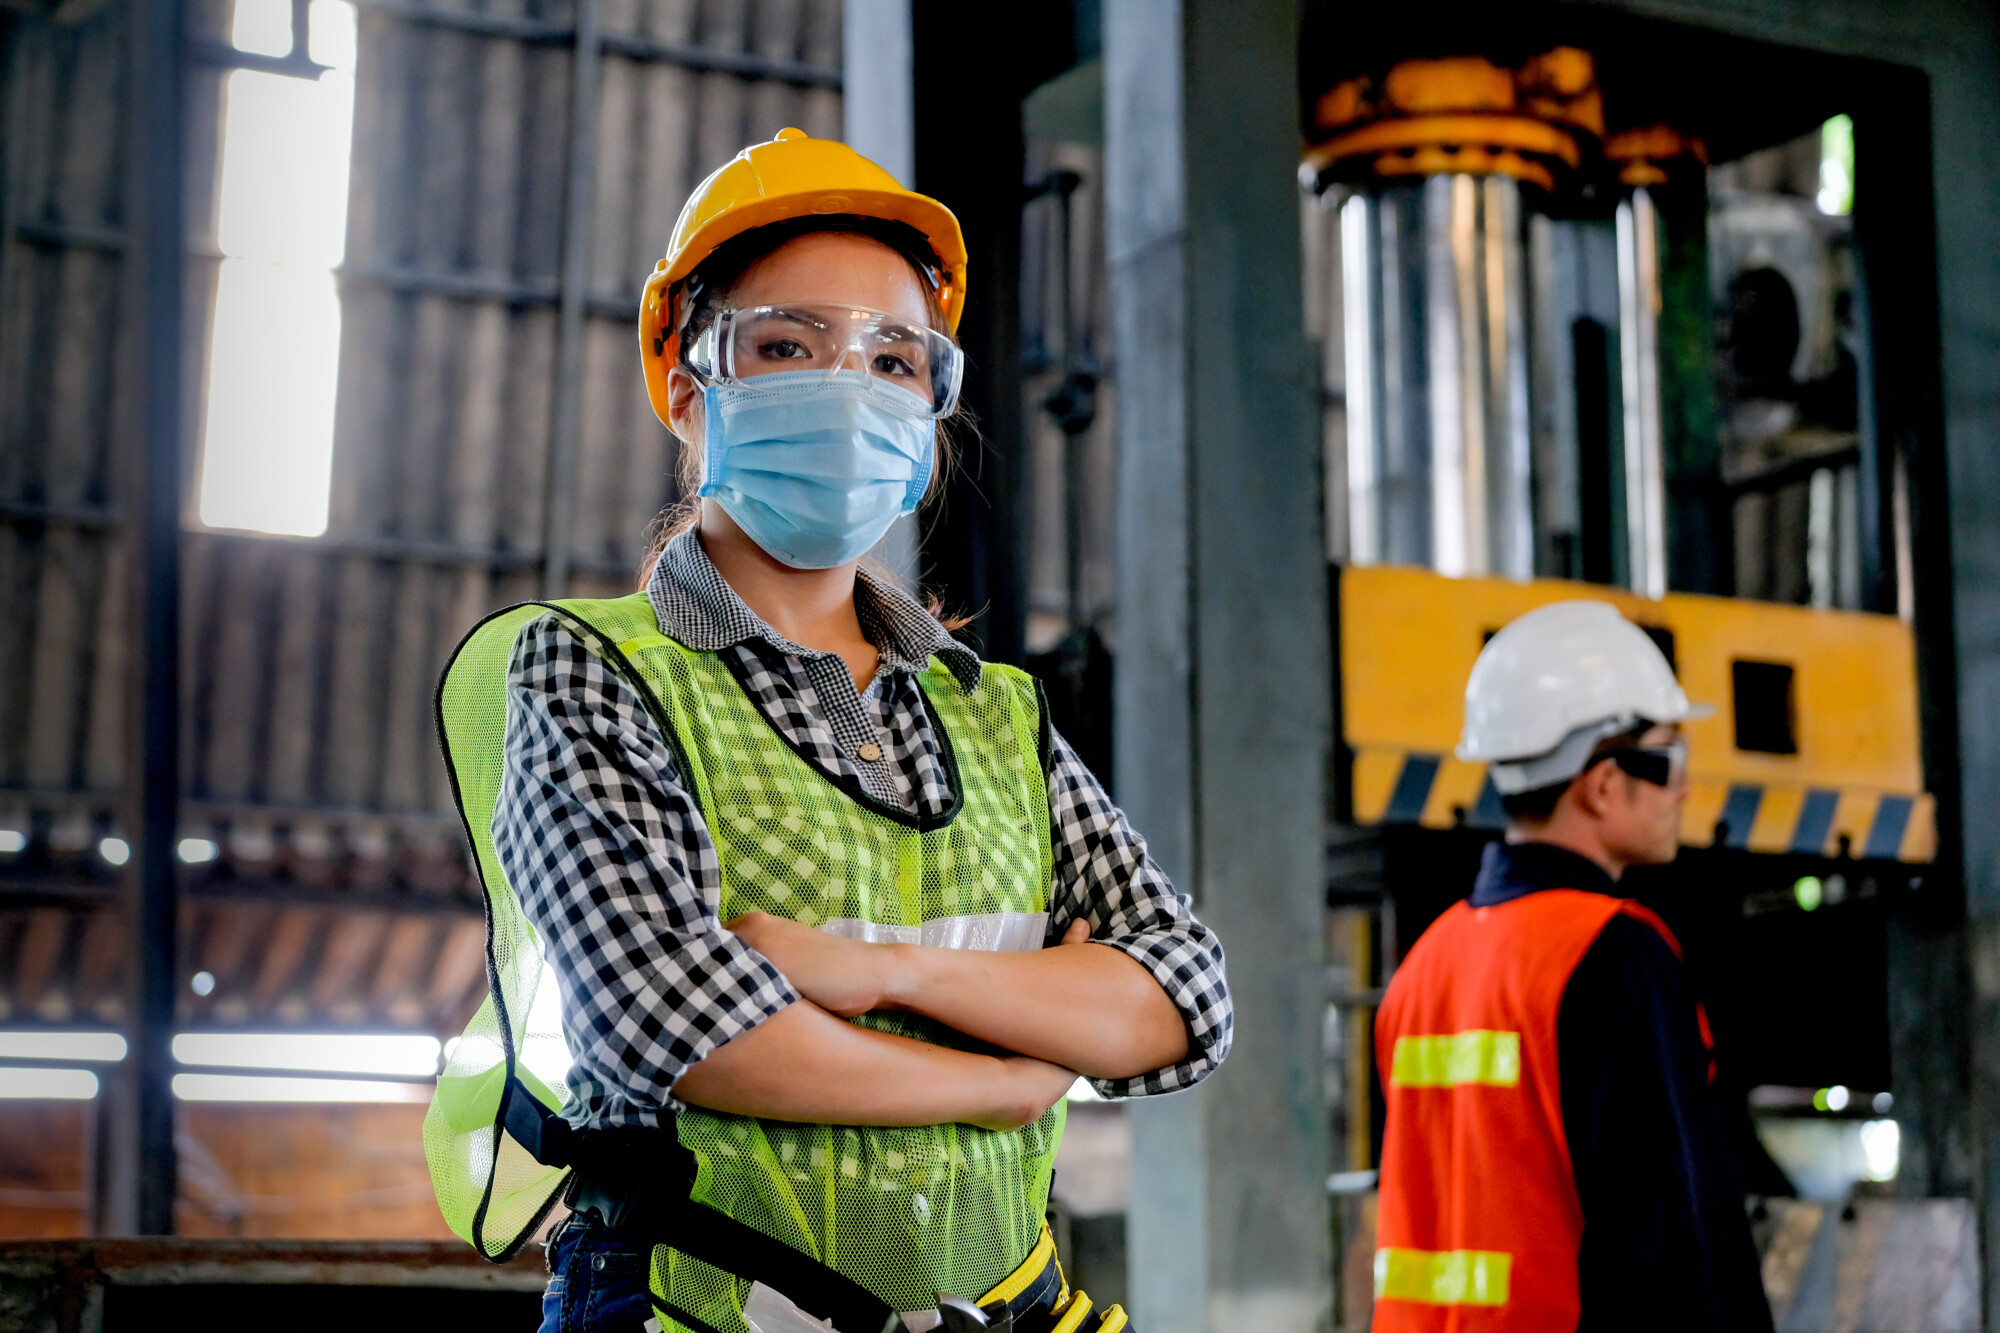 UK food Factory woman worker or technician with hygienic mask stand with confident action with her co-worker engineer in workplace during concern about covid pandemic in people affect industrial business.